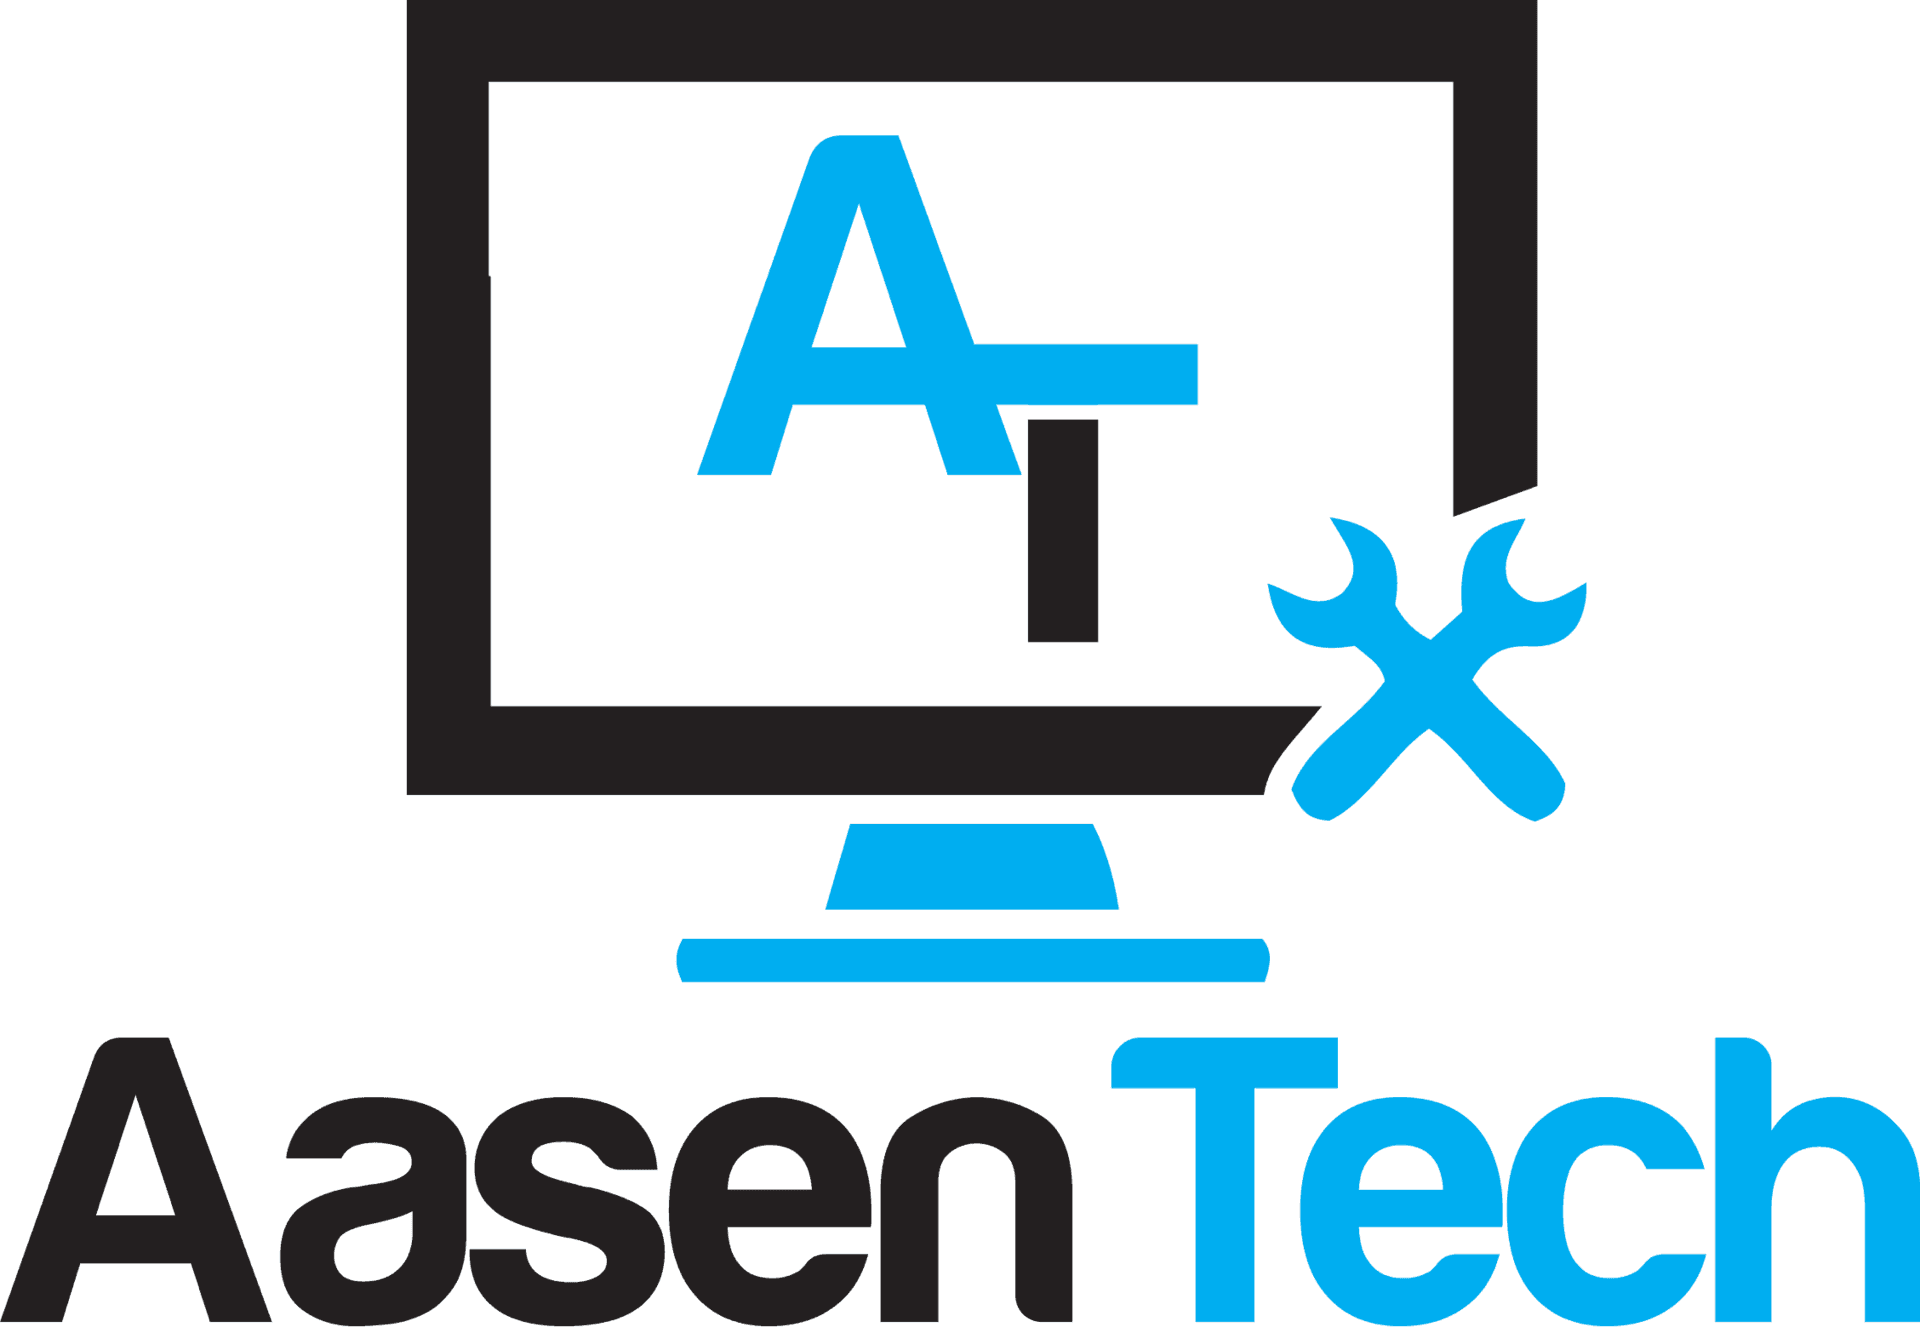 Aasen Tech - Computer Repair and Website Solutions